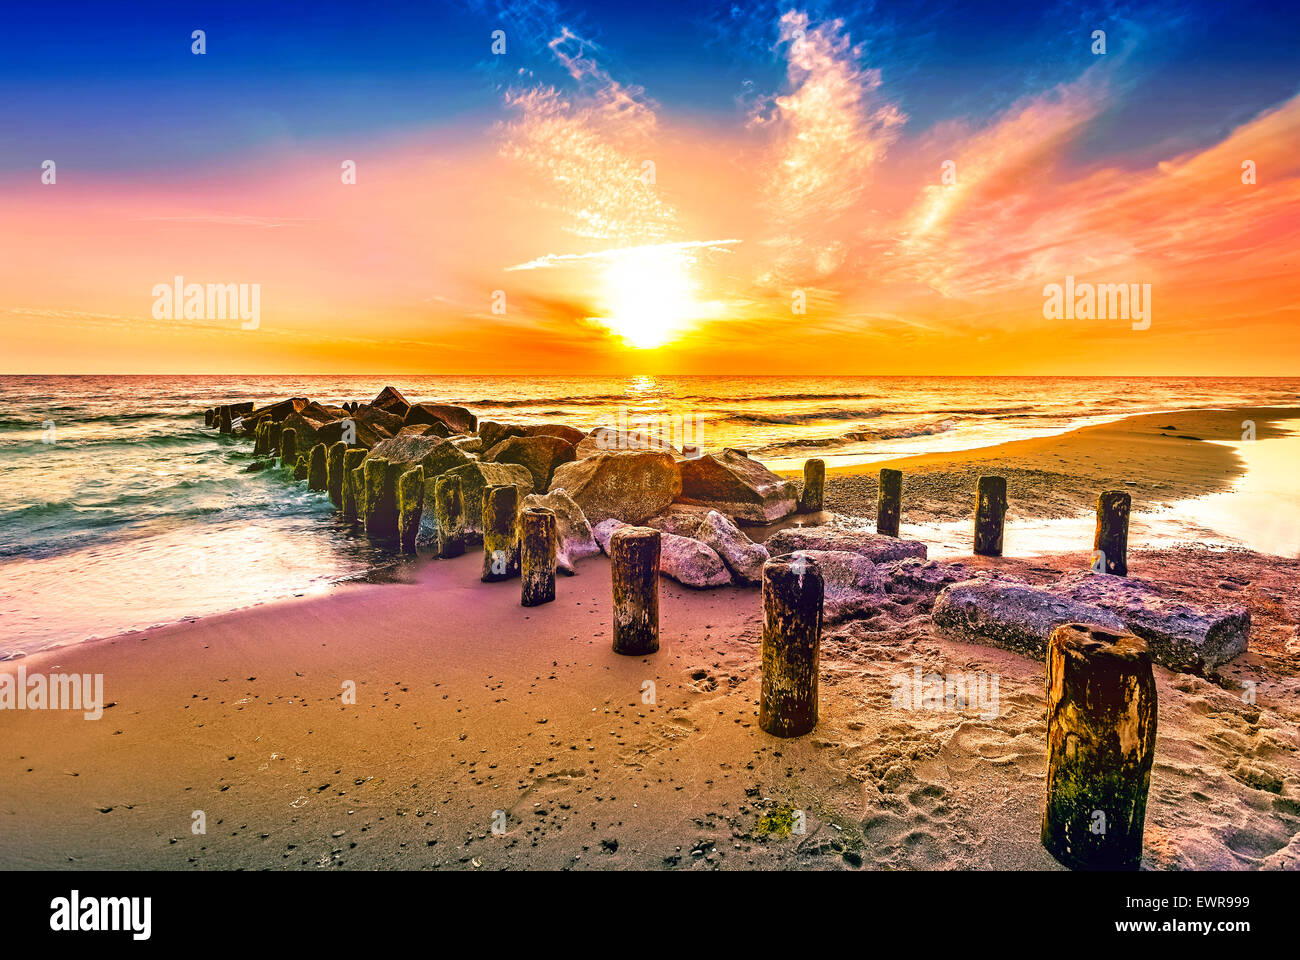 Colourful sunset on a beach. - Stock Image